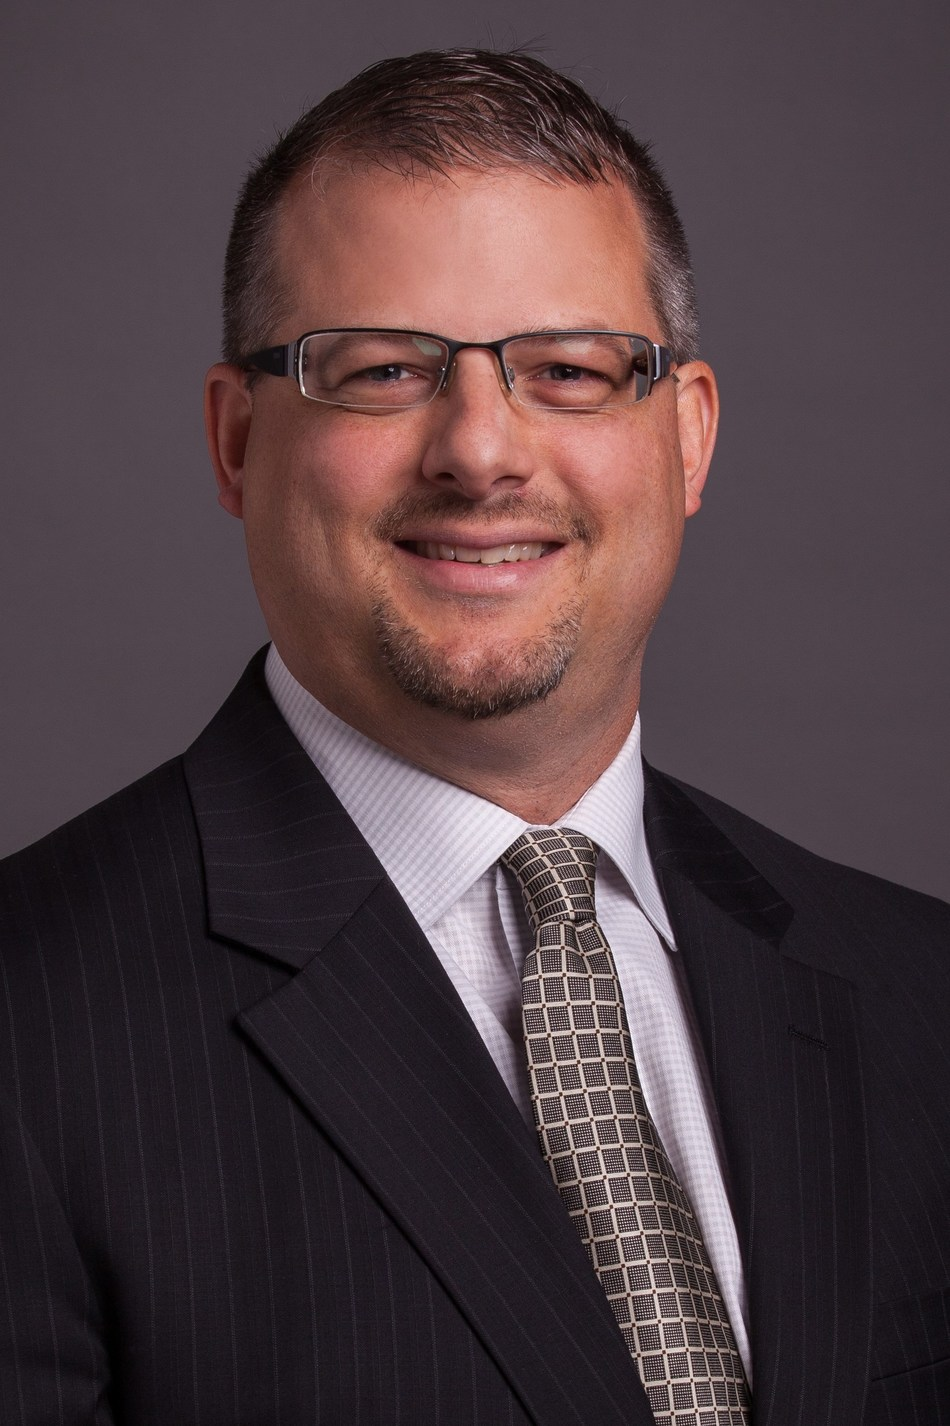 Jeff Reid has been named Country Director - Canada for the Burns & McDonnell Energy Group. (PRNewsfoto/Burns & McDonnell)